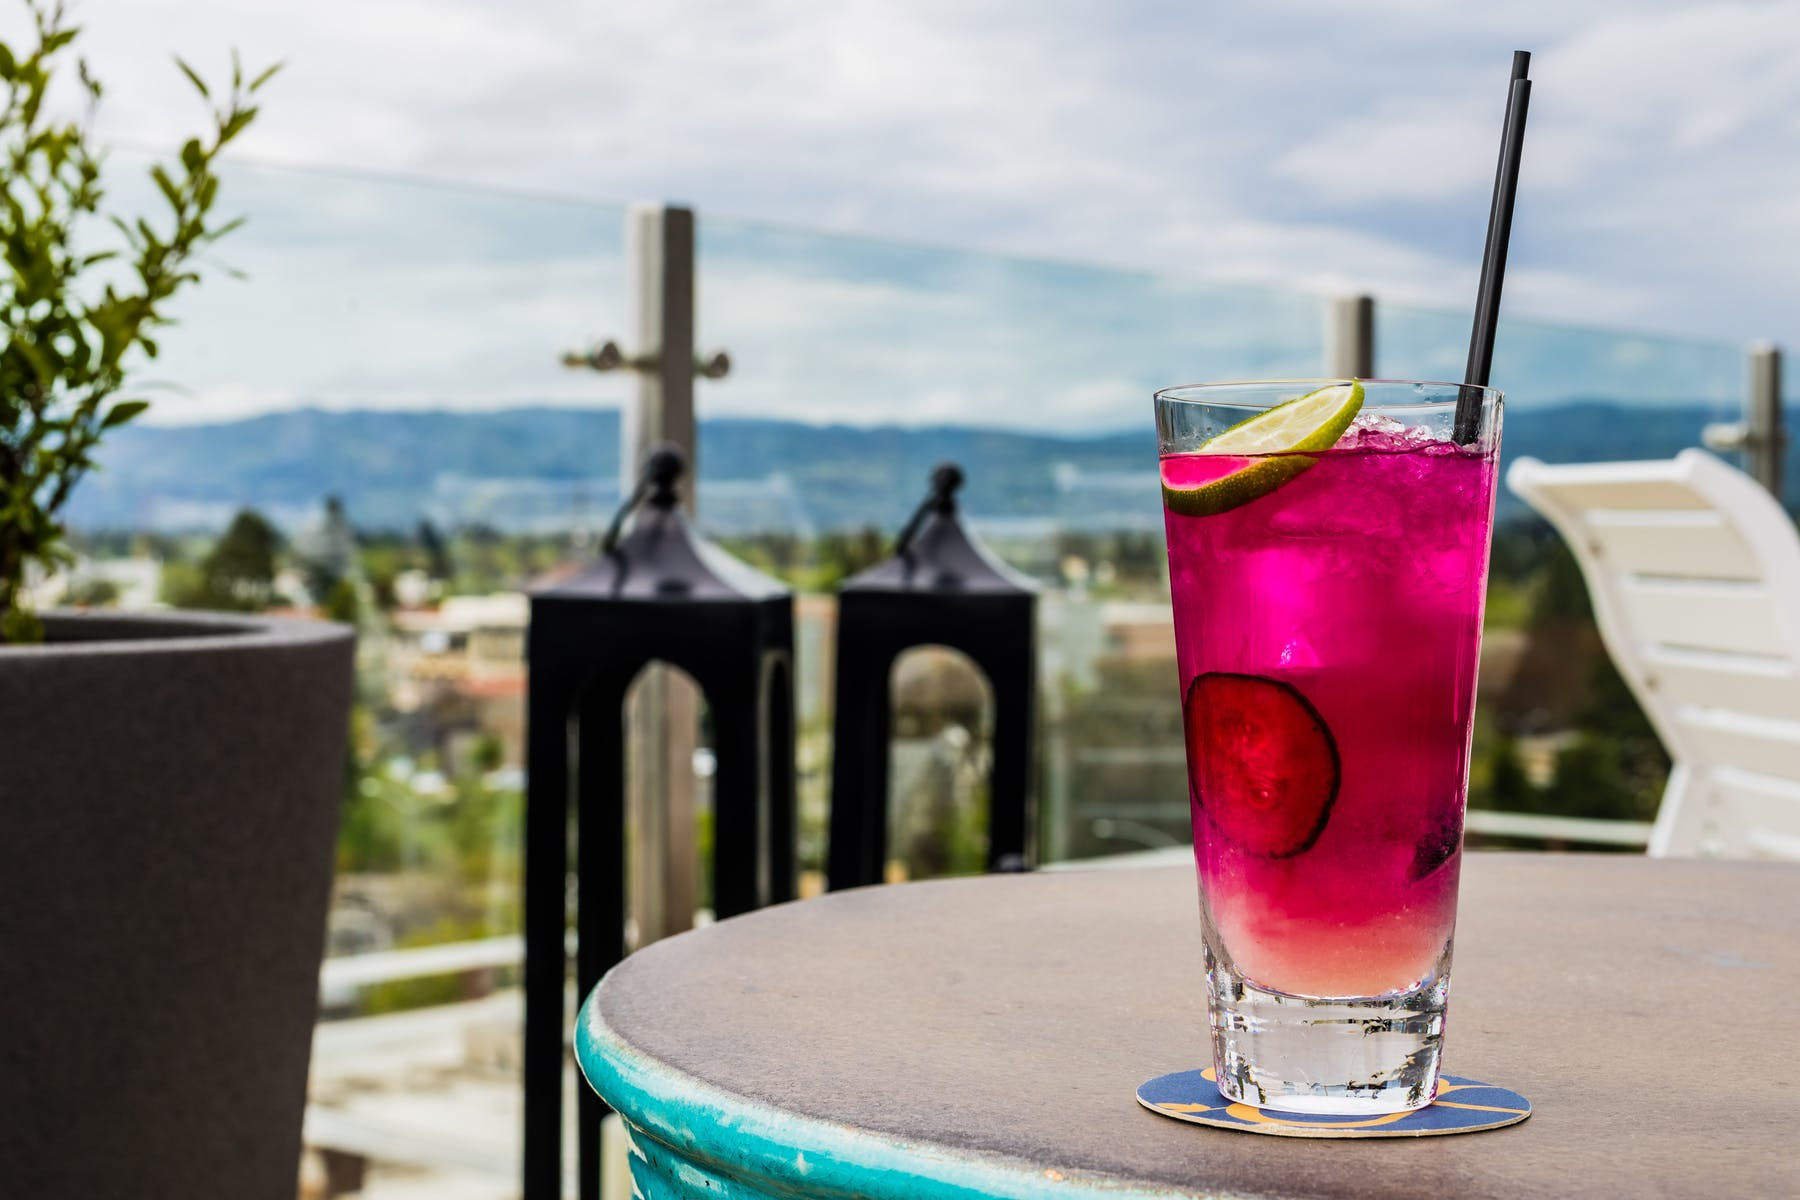 cocktail on a table